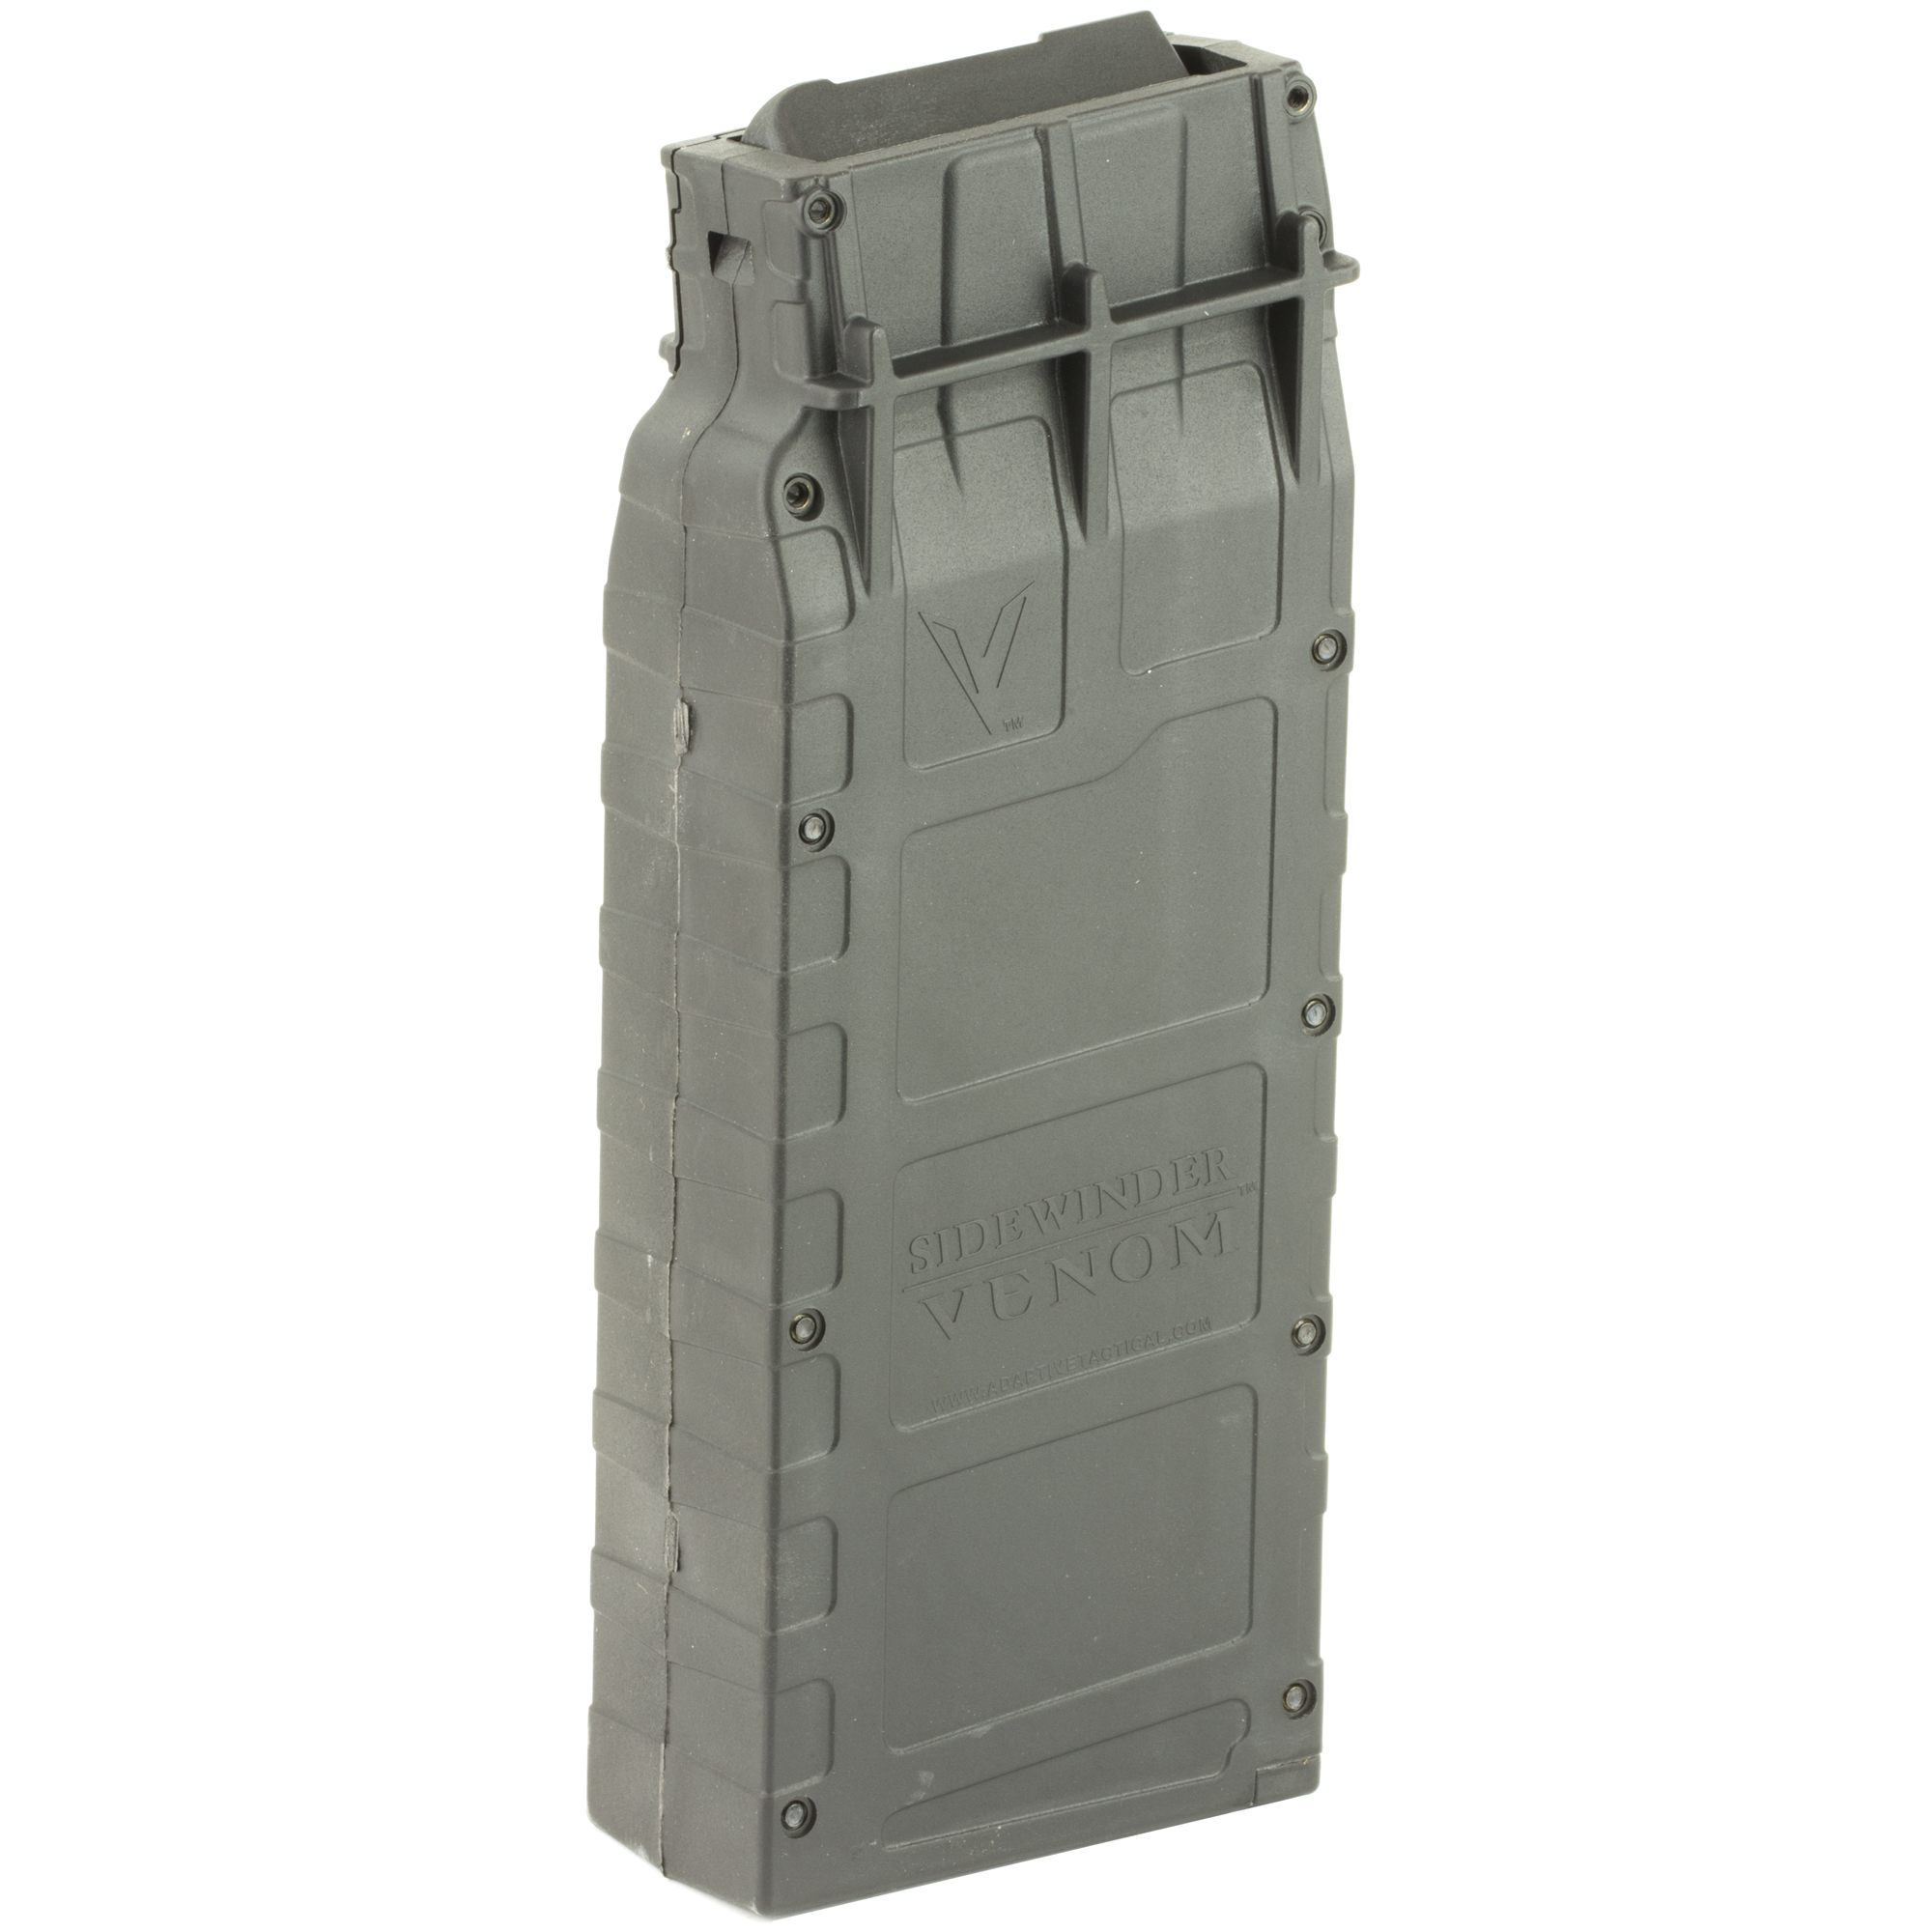 "This 10 round Box magazine is designed for use with Sidewinder Venom magazine-fed shotgun system. Its lightning-fast reload action cycles 12 gauge rounds consistently and reliably for the ultimate in performance for defense"" range or competition."